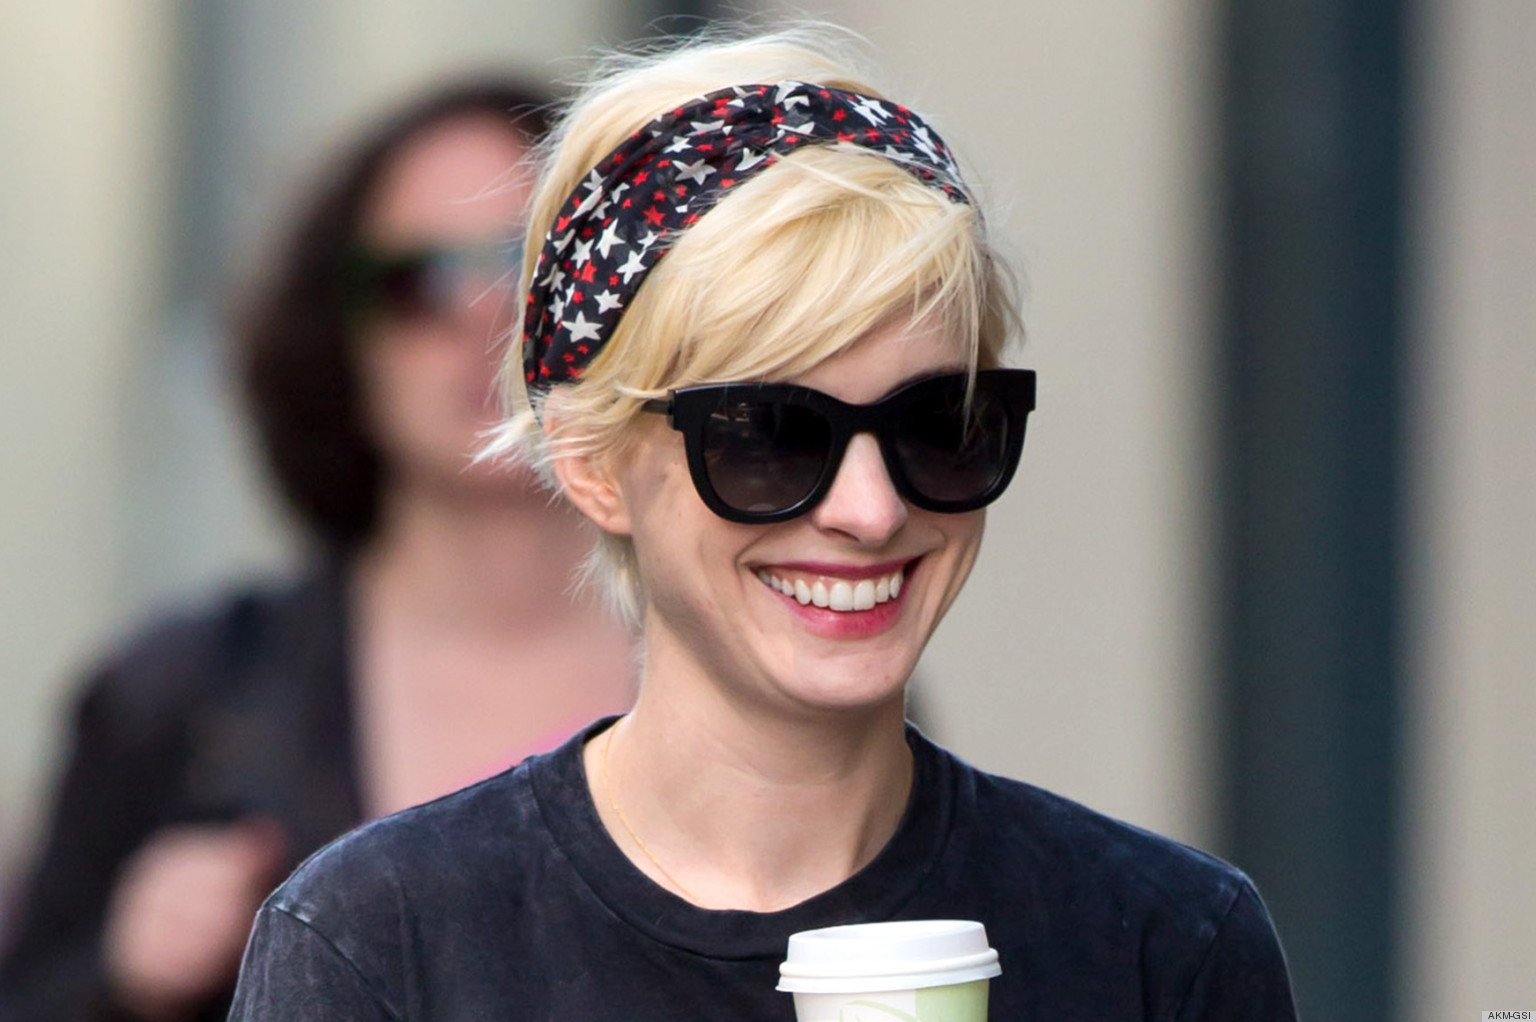 PHOTOS: Anne Hathaway Keeps Her Punk Blonde Hair The Day After The Met Gala